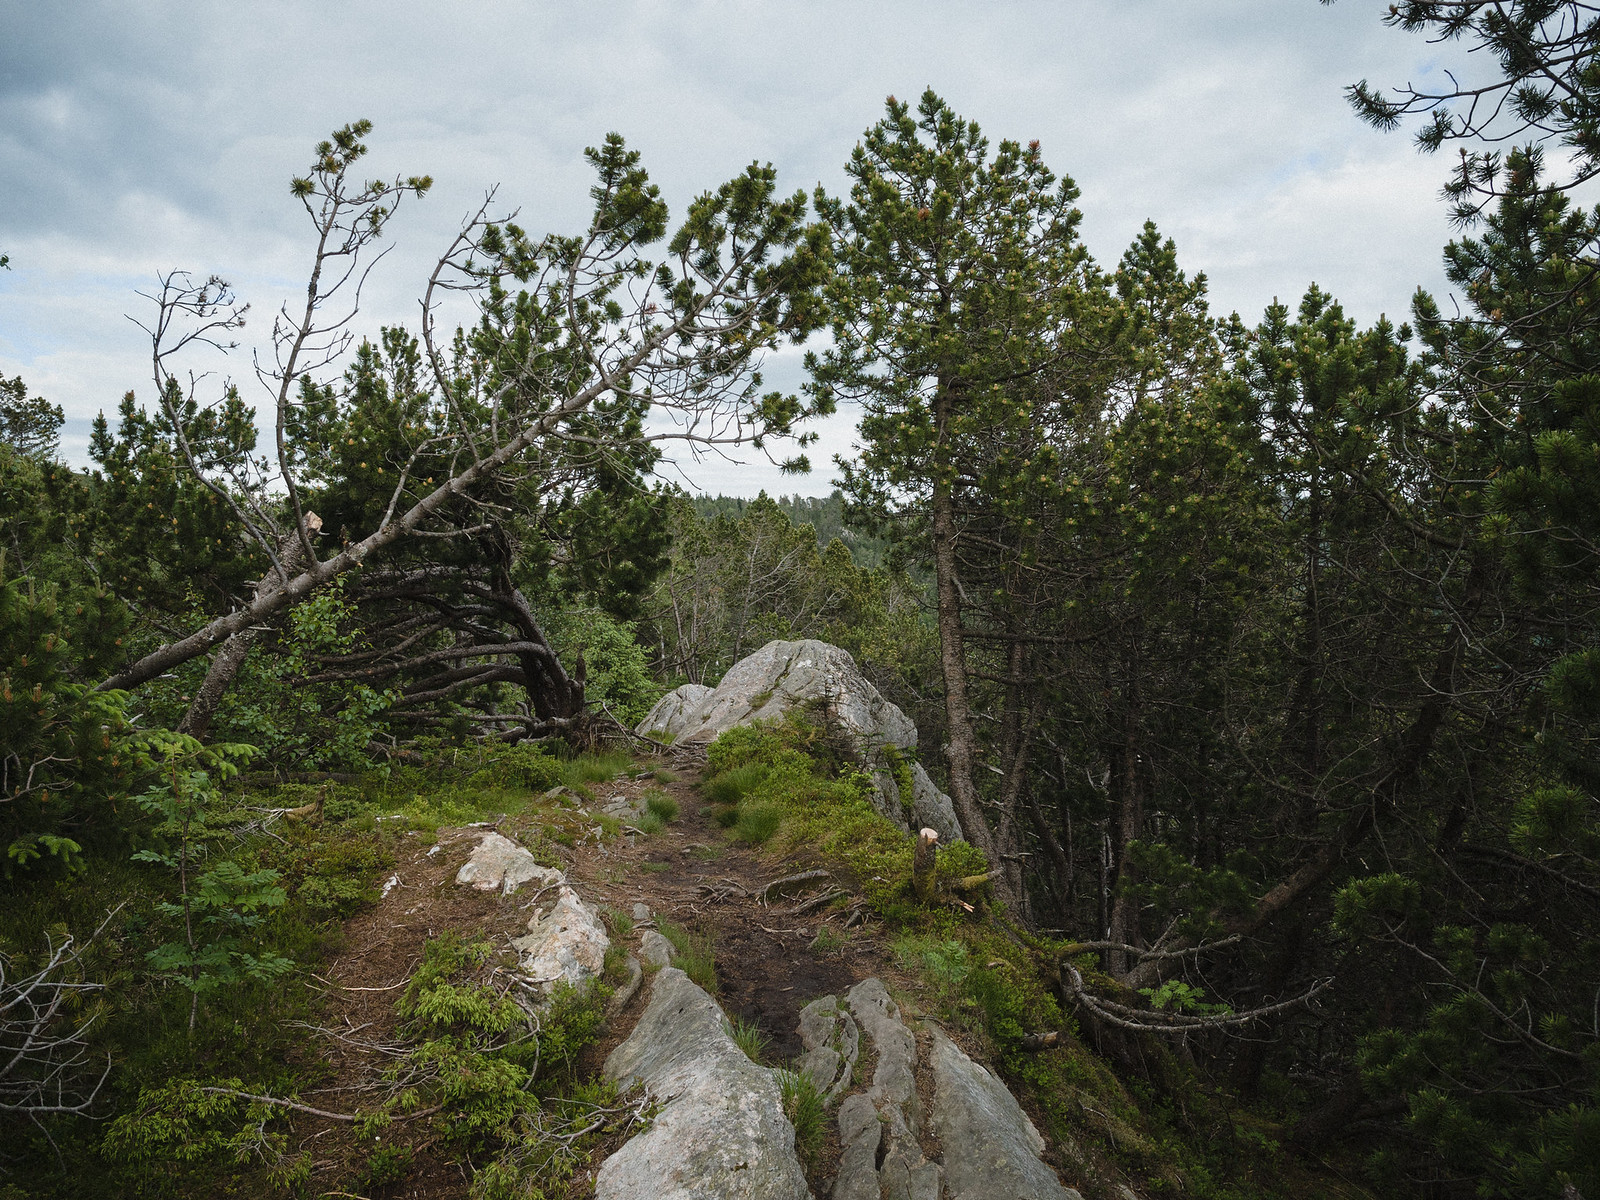 Rocky hiking trail in between crooked pine trees.